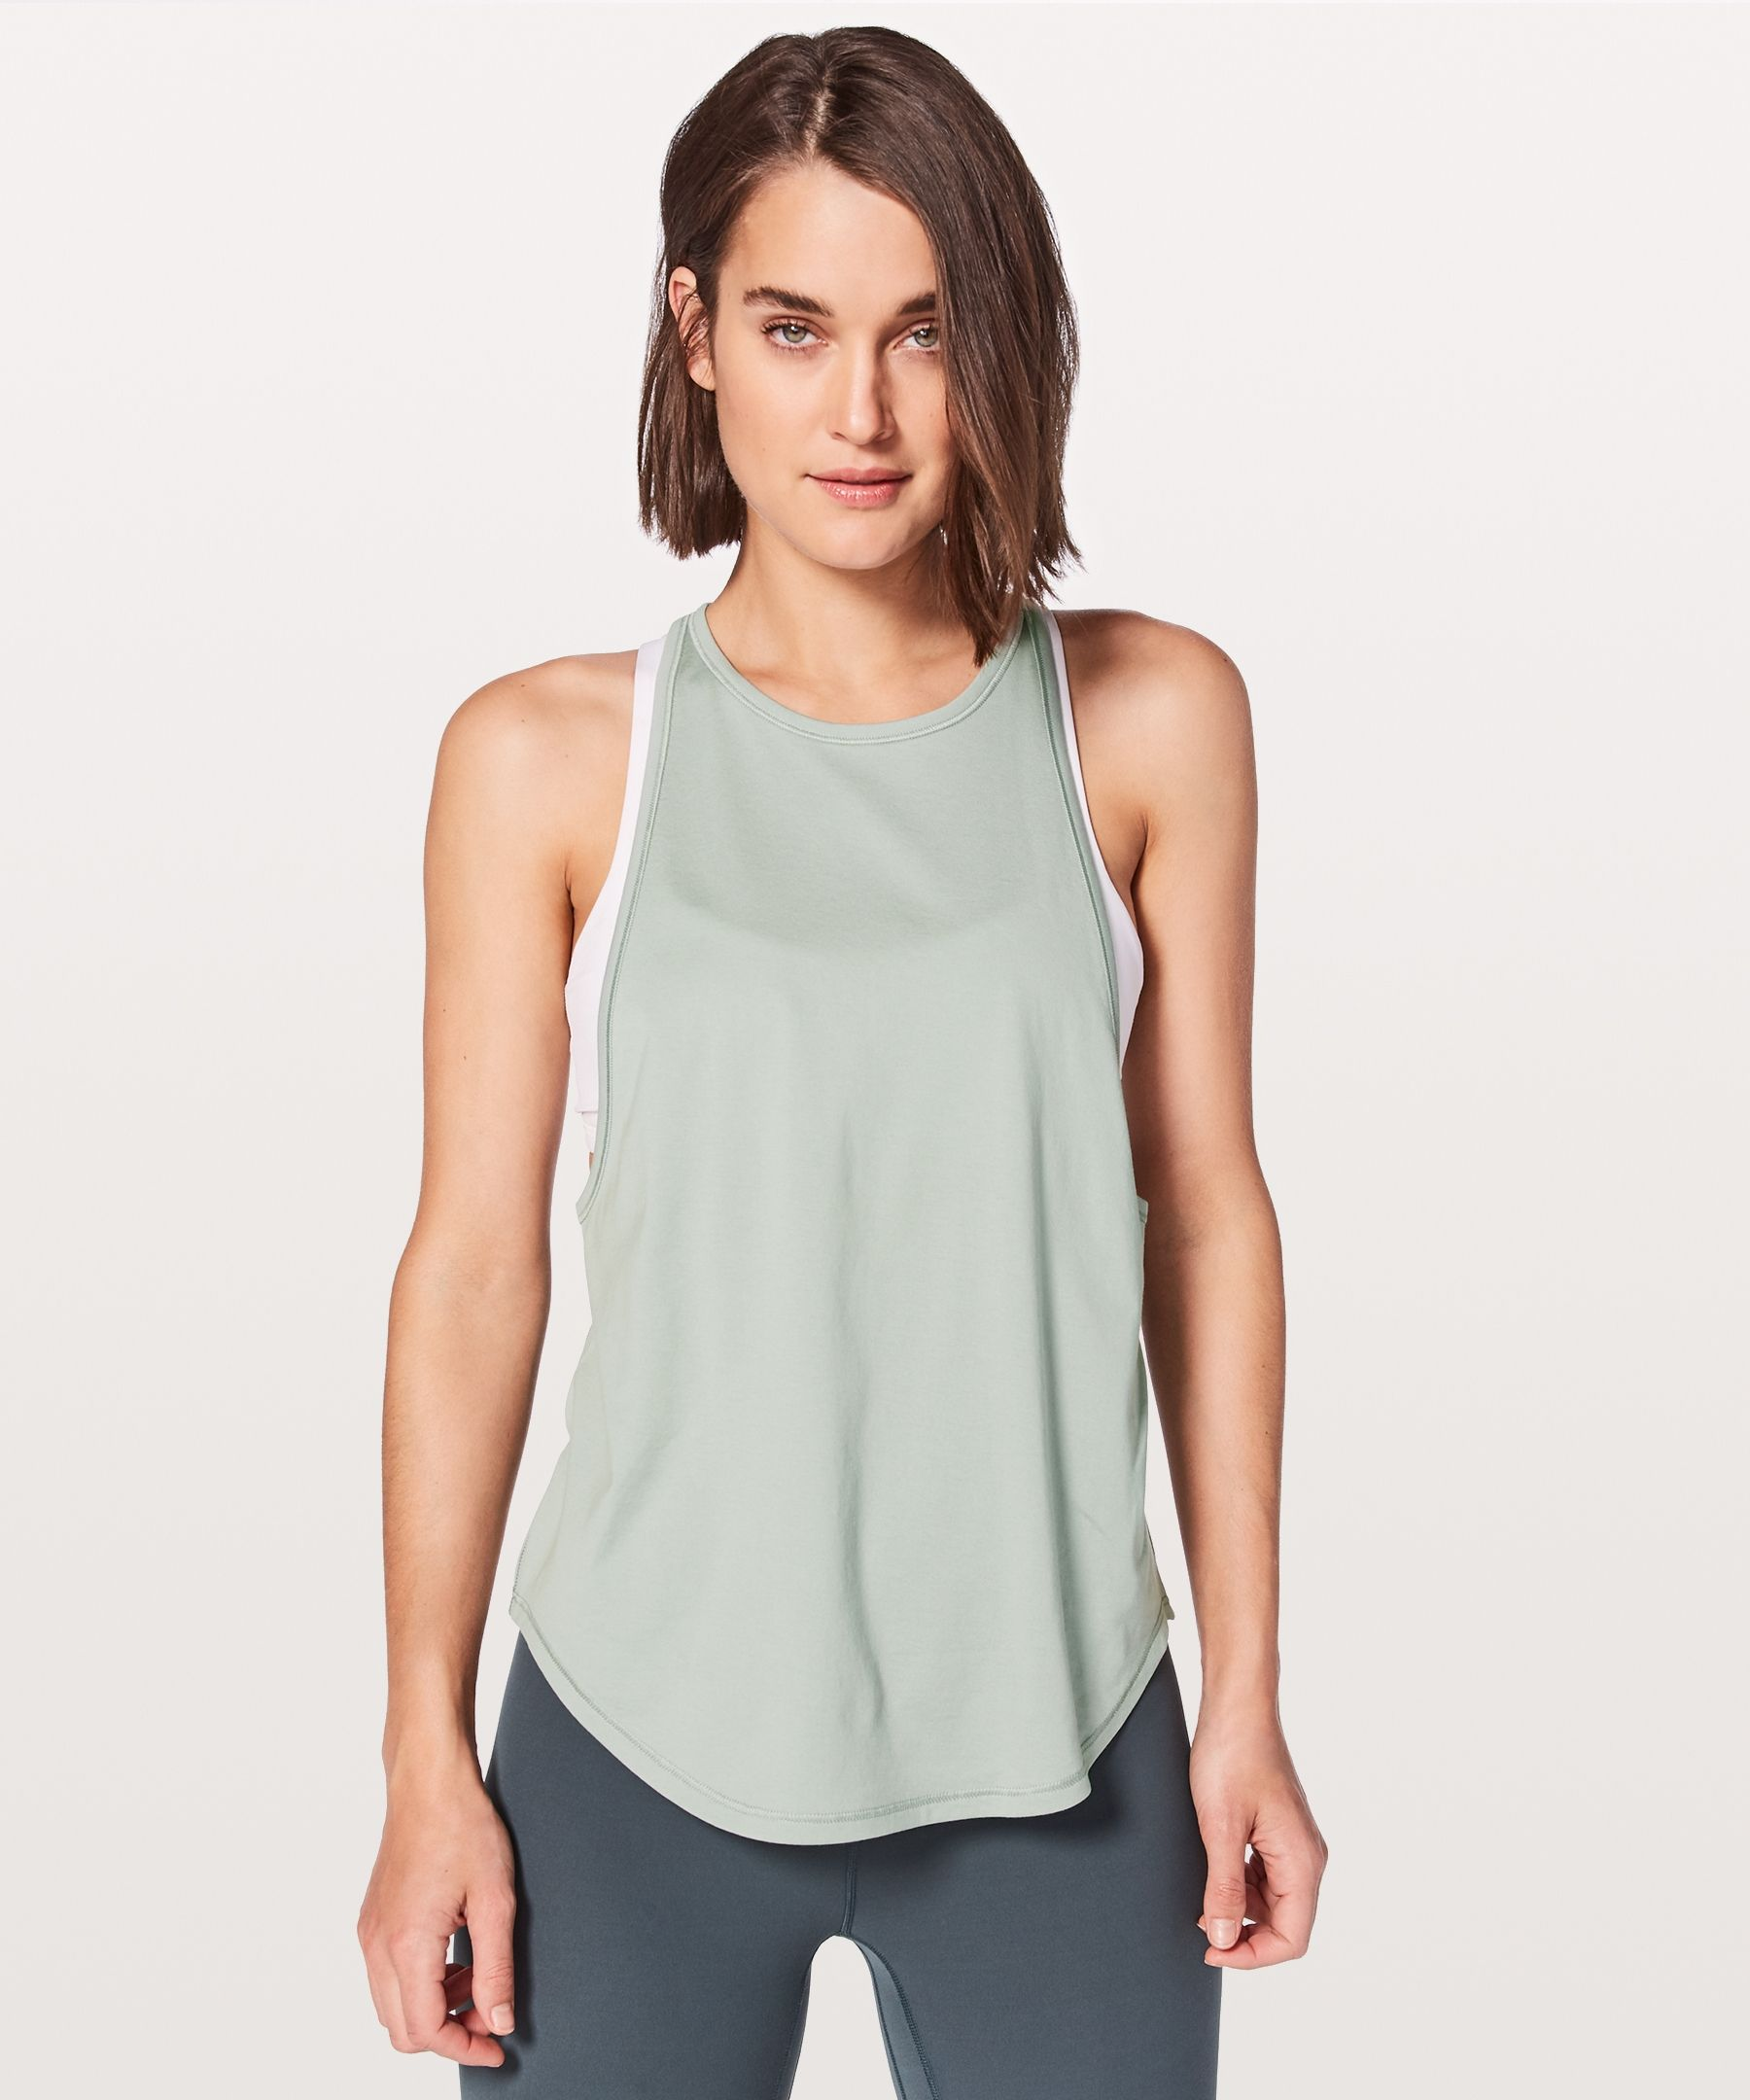 aa63a32ed3 Sweat Date Singlet - We designed this muscle tank with super low armholes  for airflow during your practice and hot summer days.